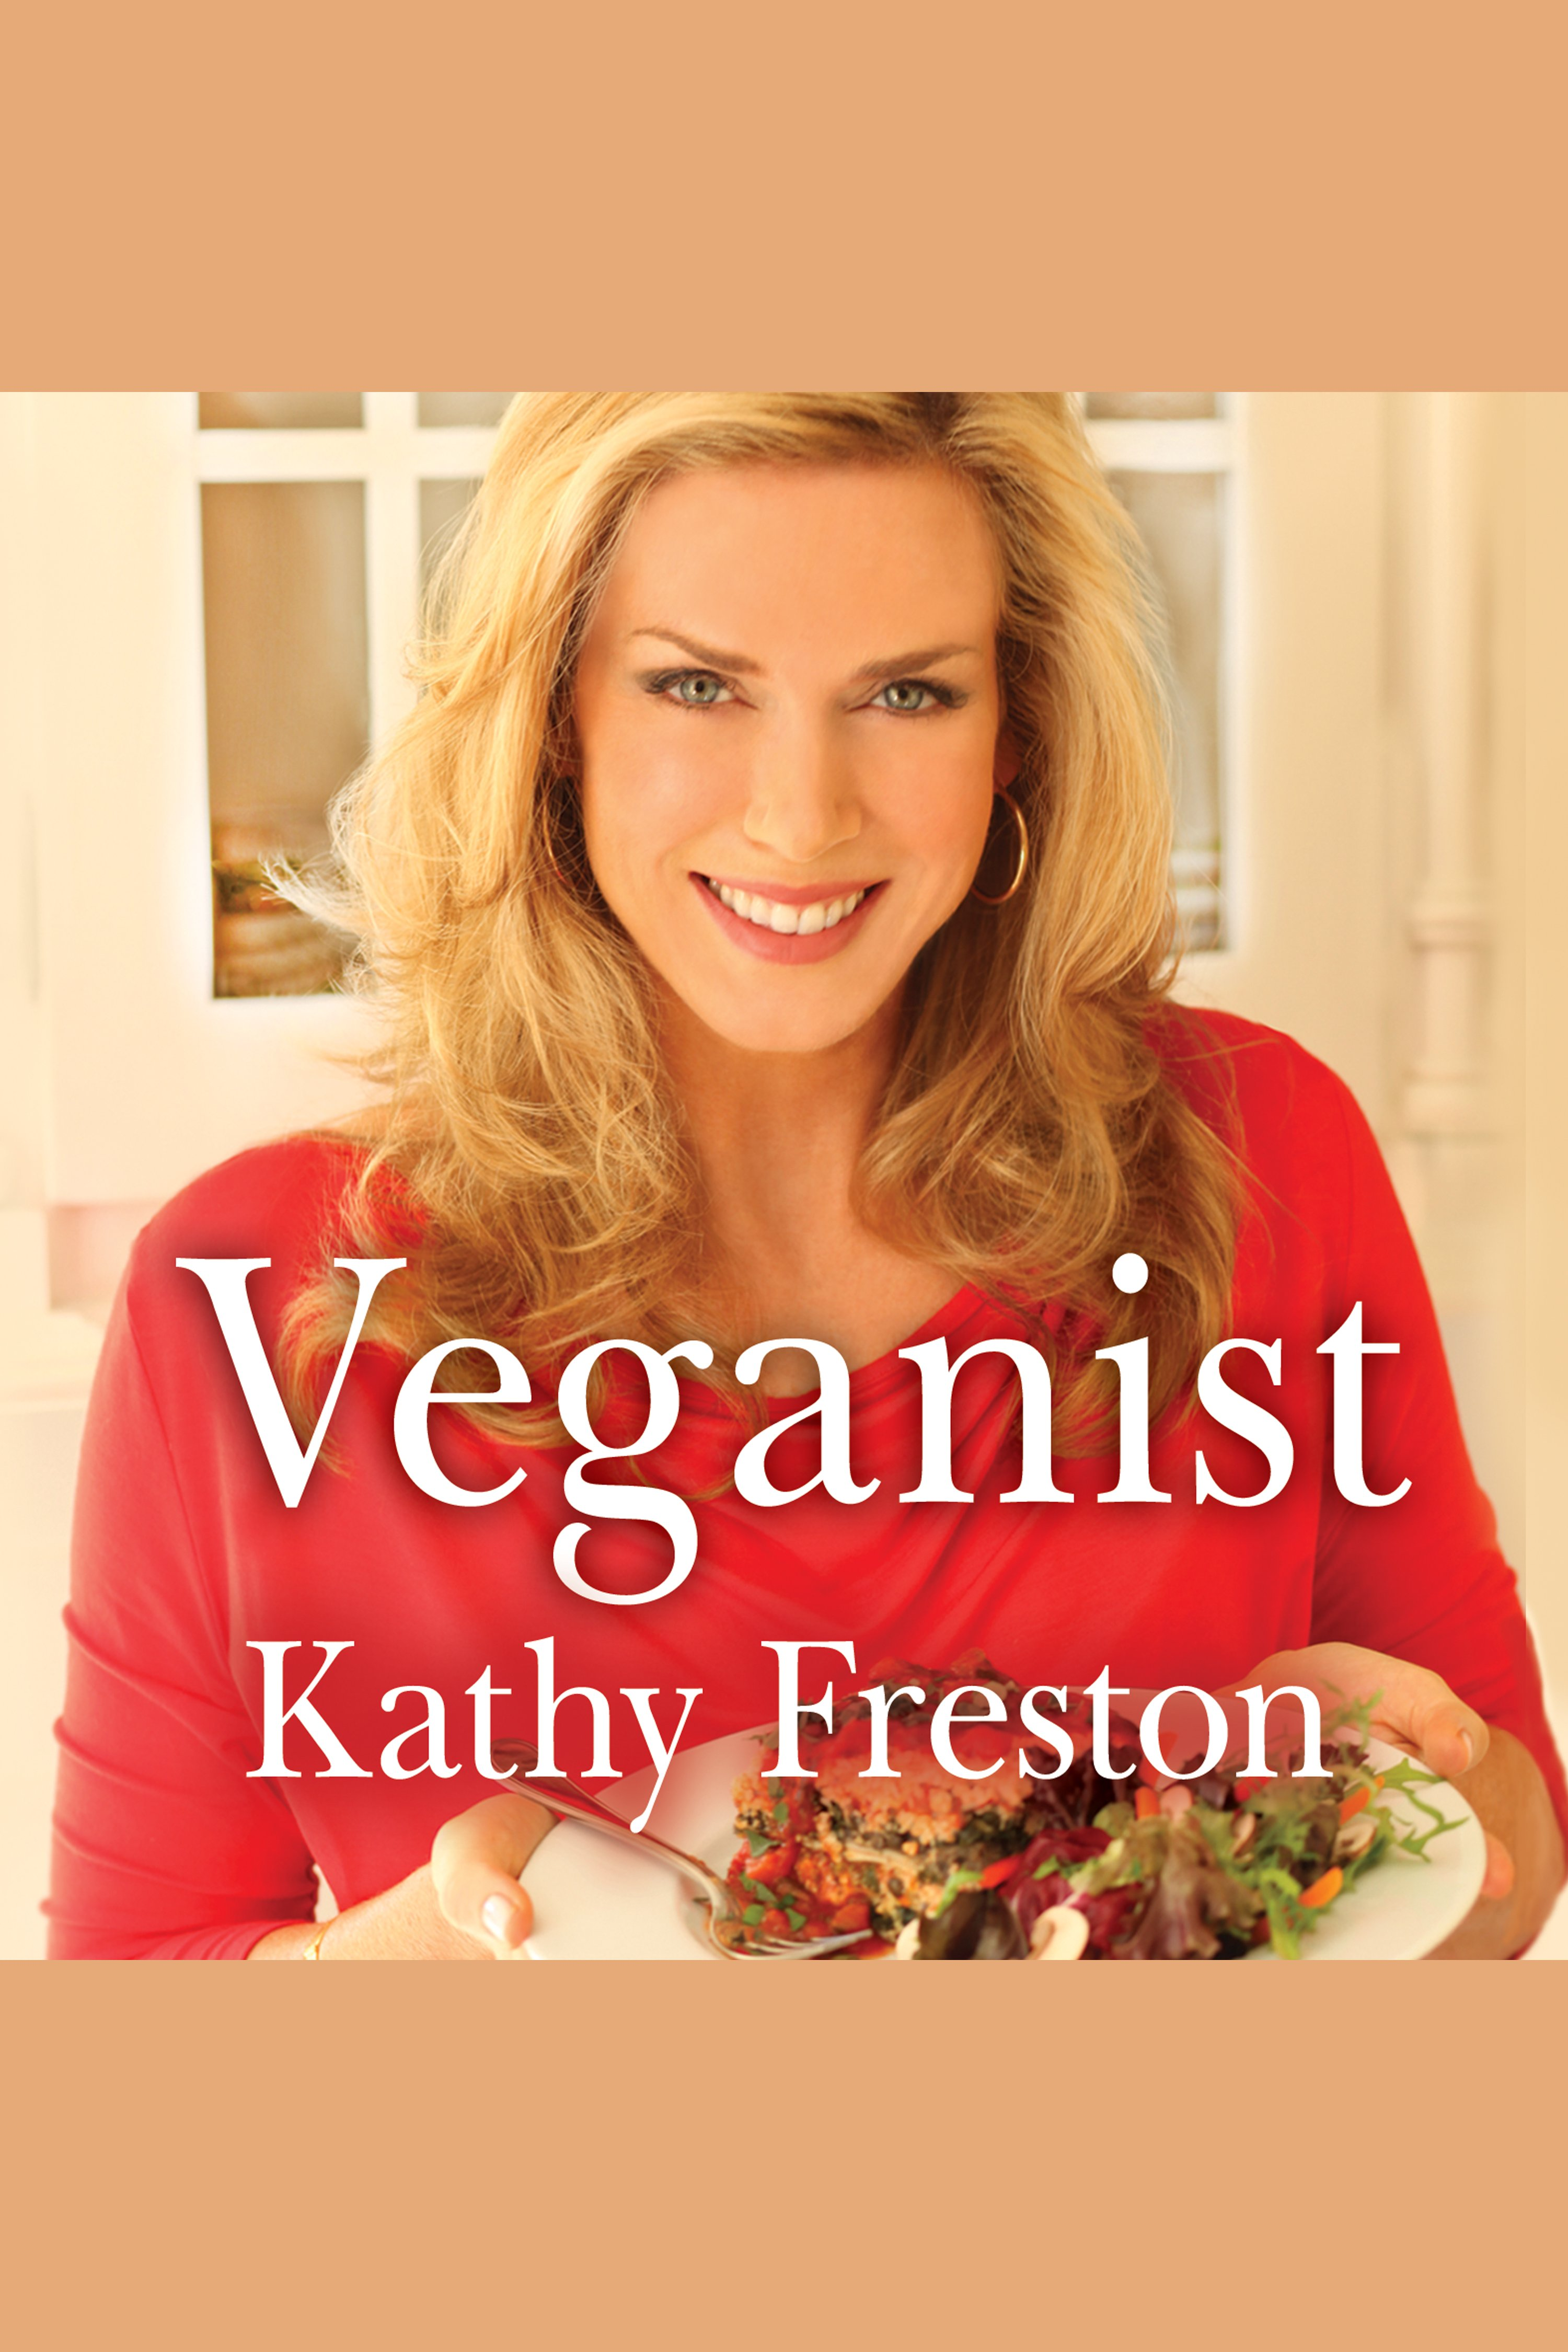 Veganist lose weight, get healthy, change the world cover image